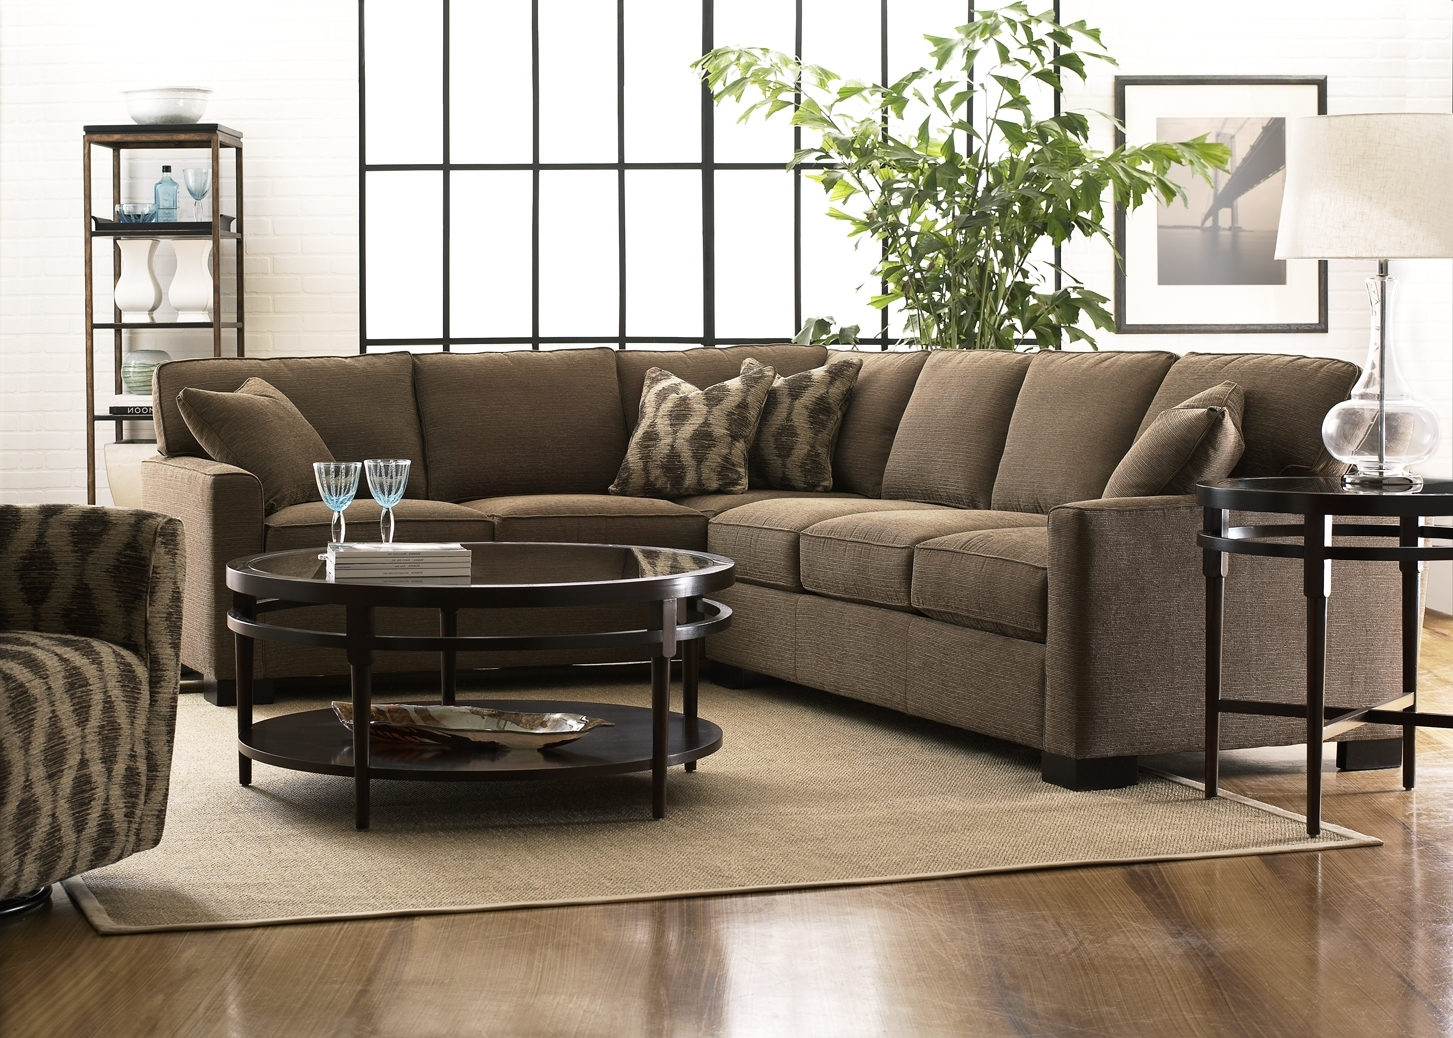 Narrow Spaces Sectional Sofas In Most Recently Released L Brown Fabric Sofa With Back Addedround Black Table With (View 15 of 20)